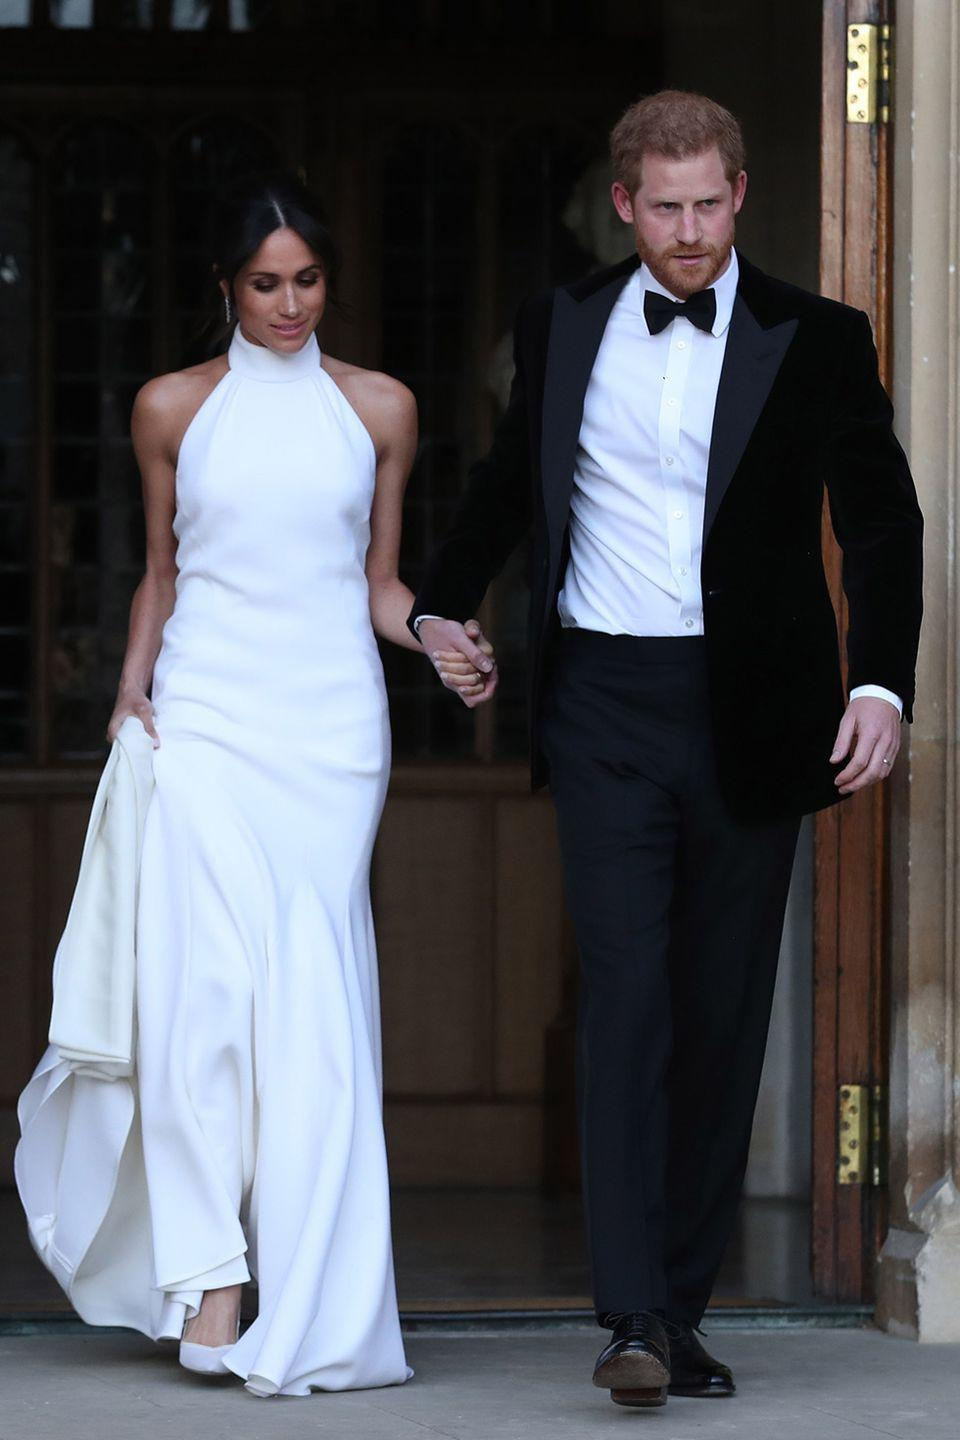 <p>Again, when you're royalty, you get two wedding dresses. Meghan changed into a sexy halter-neck Stella McCartney white dress for her wedding reception at Frogmore House.</p>